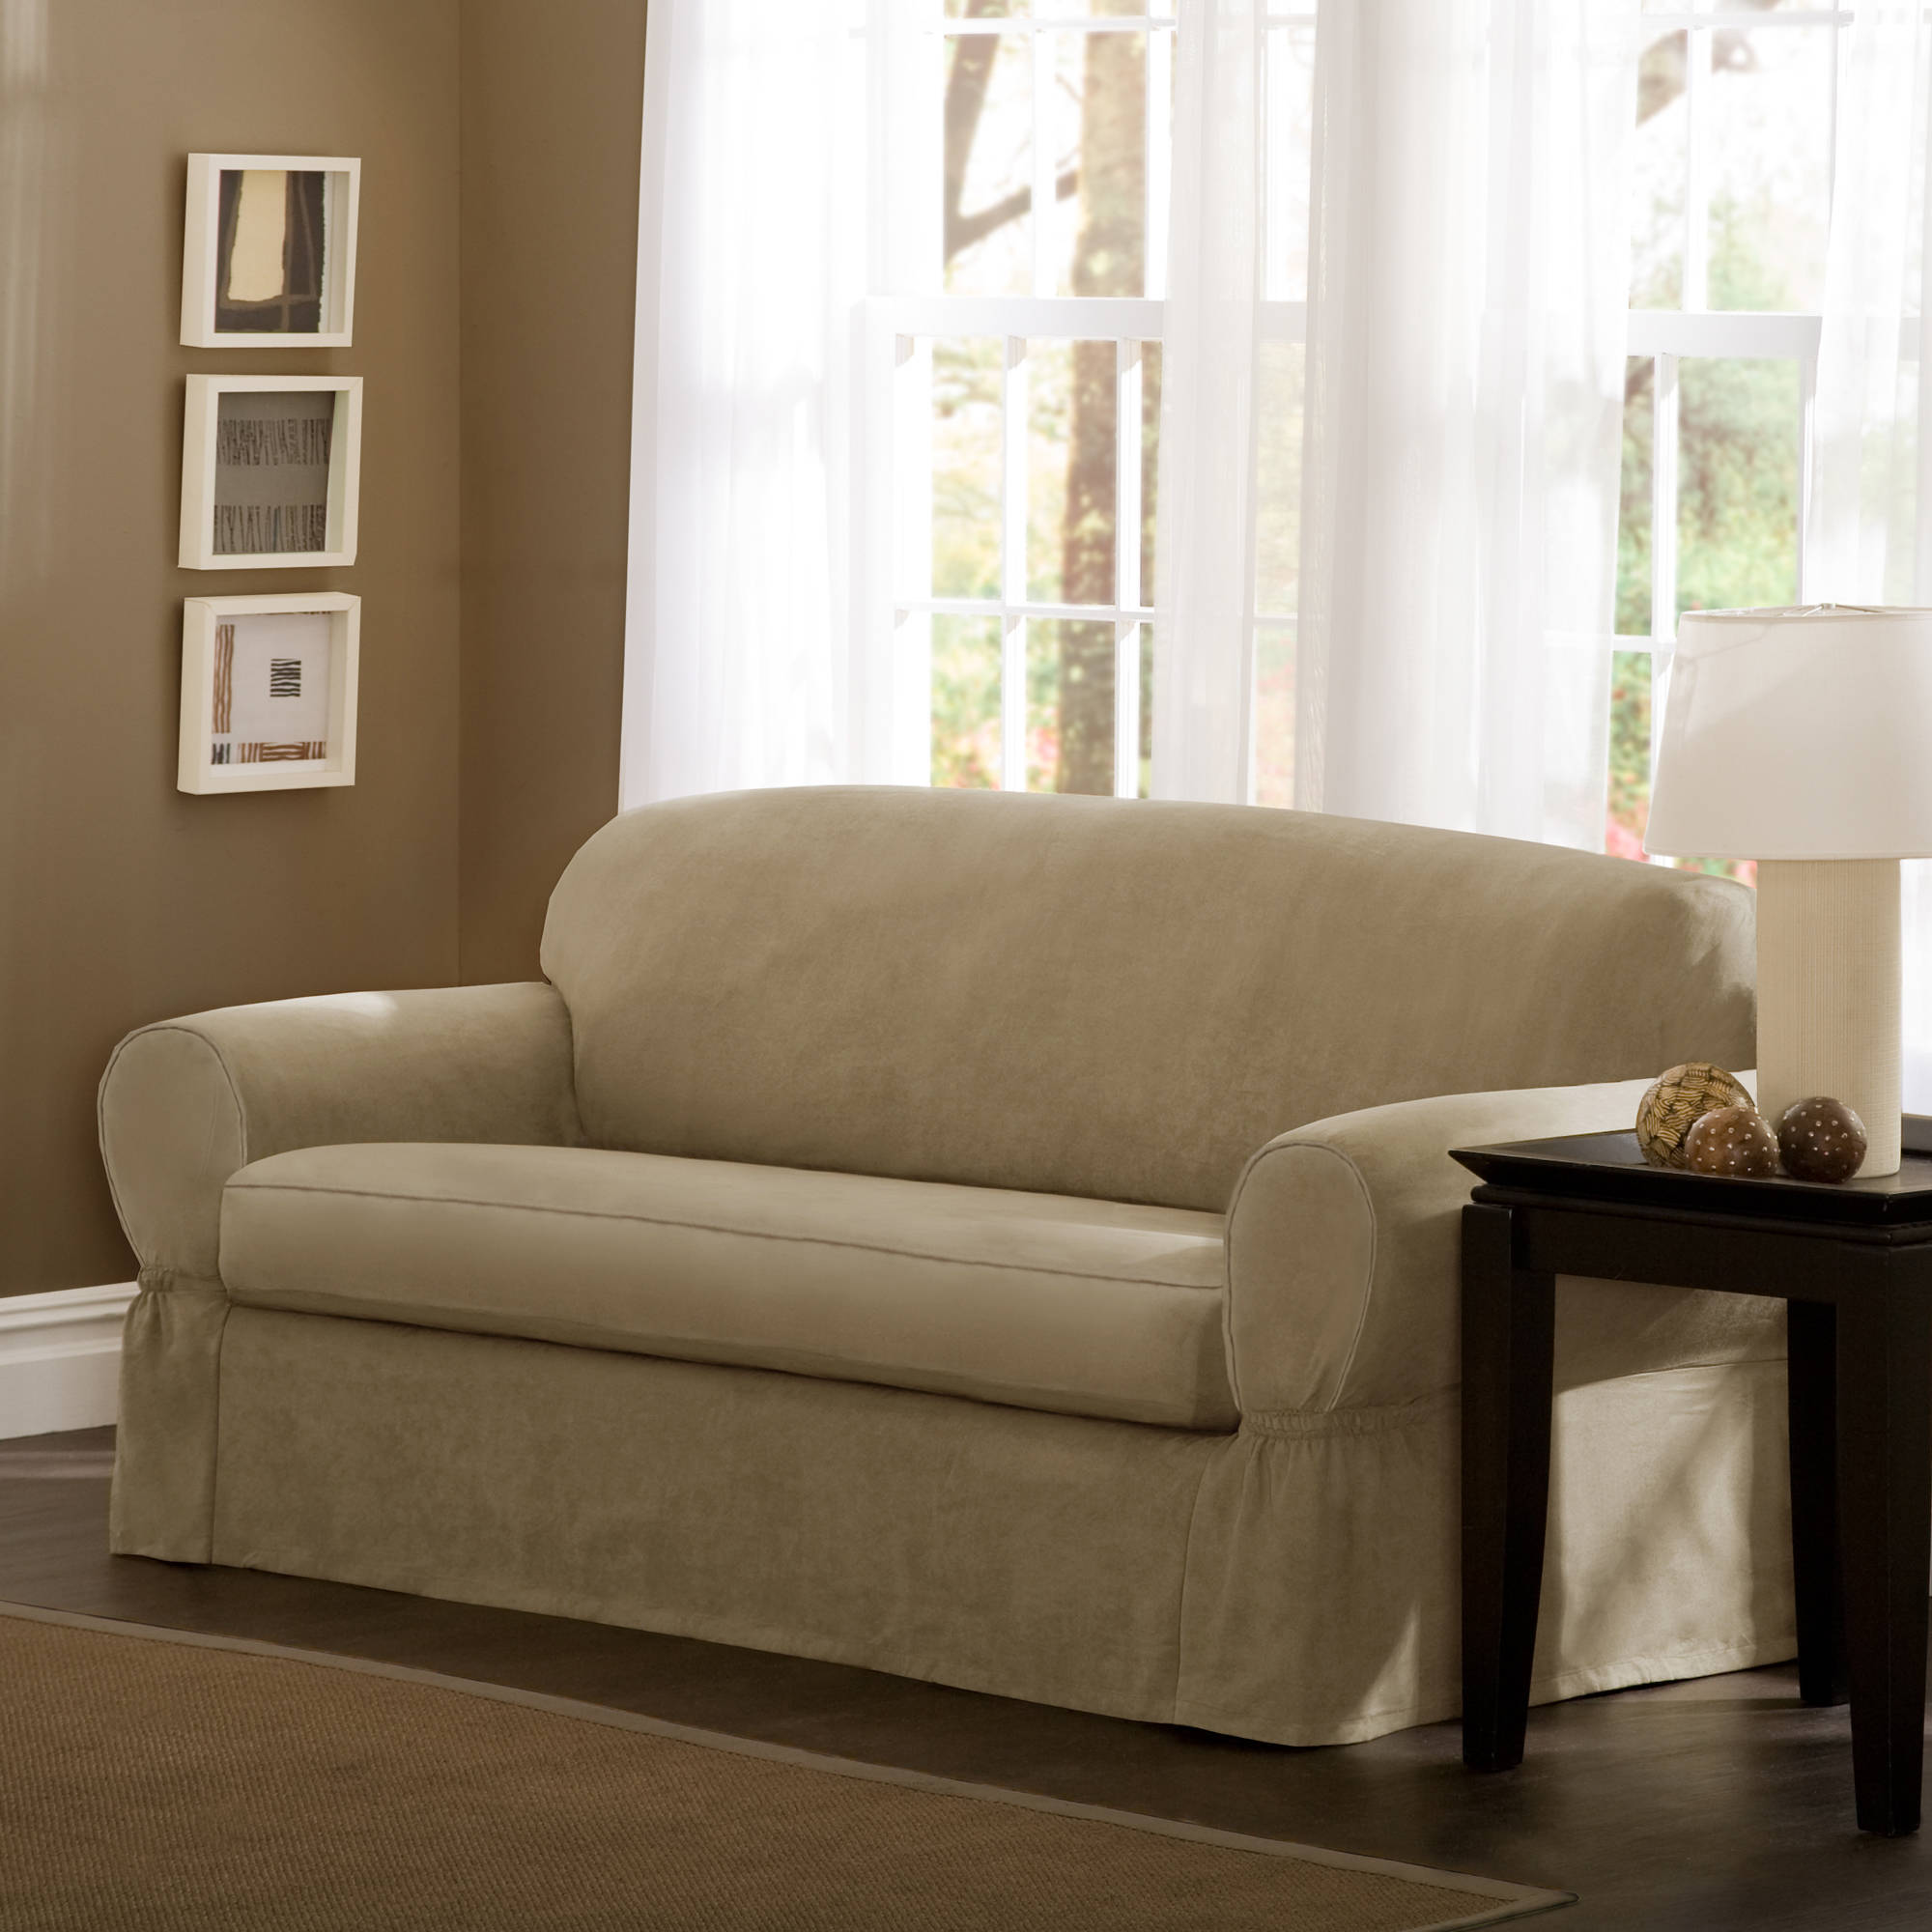 Maytex Piped Faux Suede Non-Stretch 2 Piece Sofa Furniture Cover Slipcover, Flax